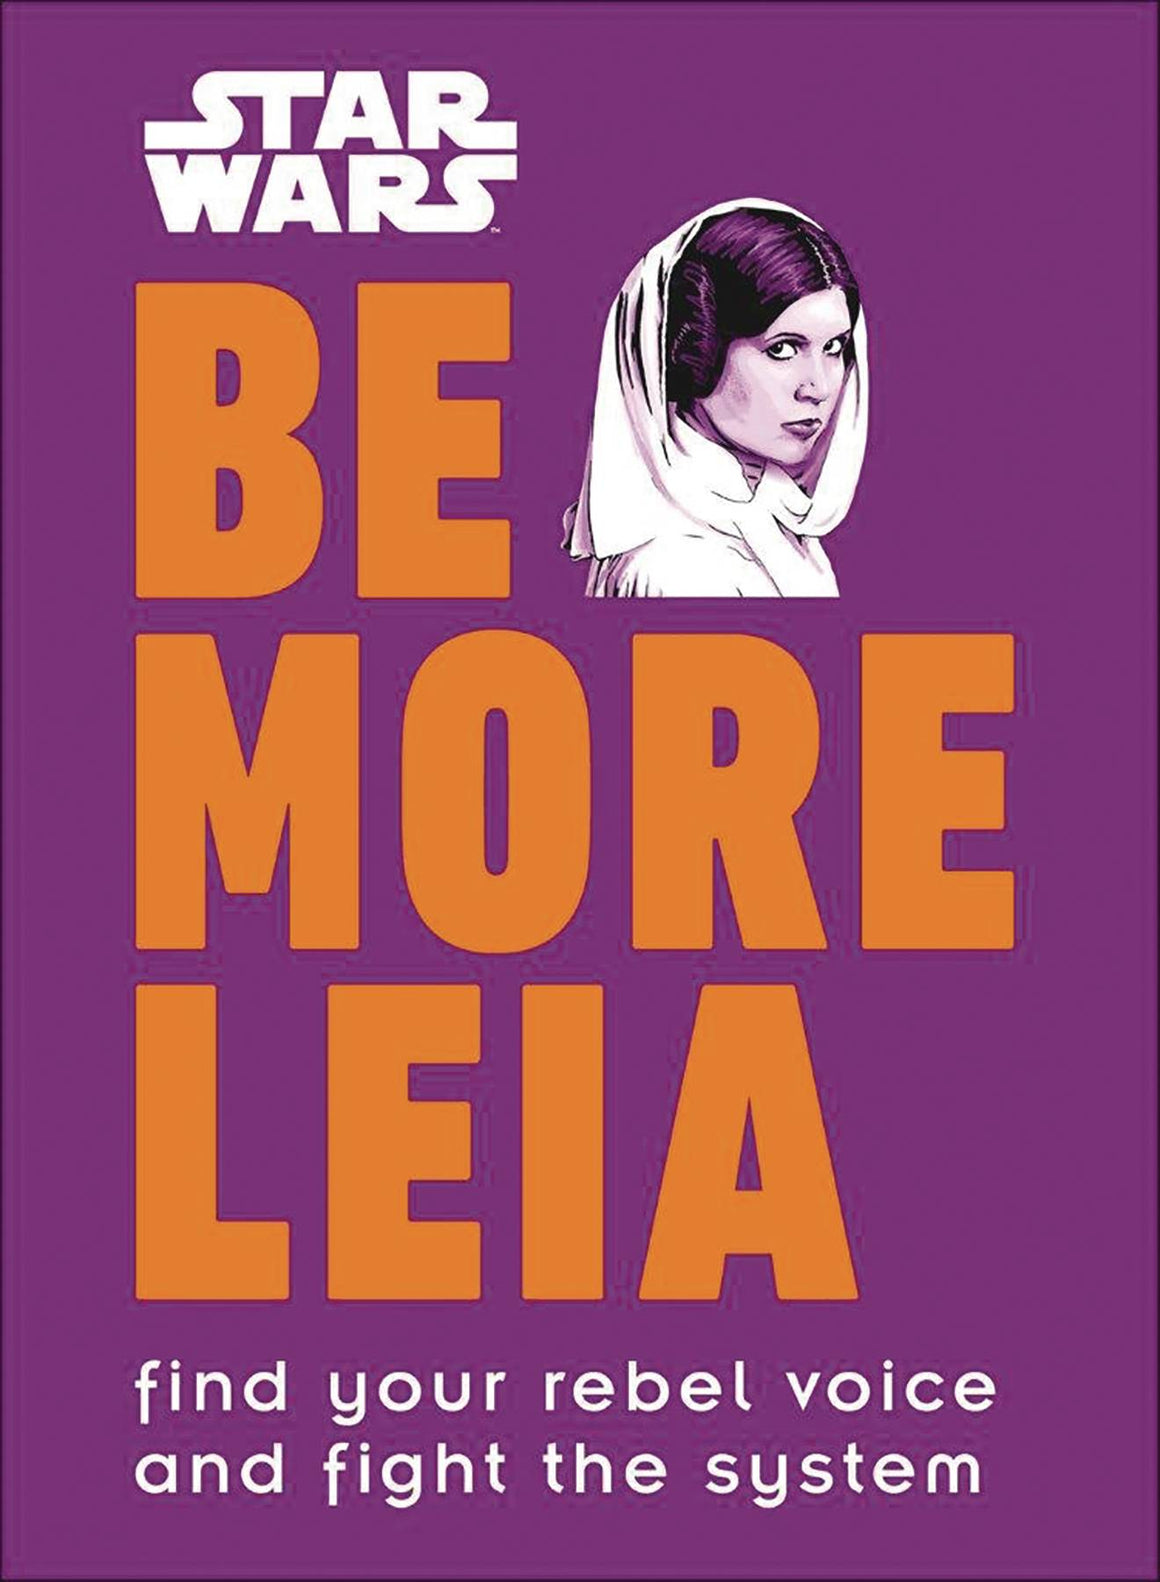 Star Wars Be More Leia